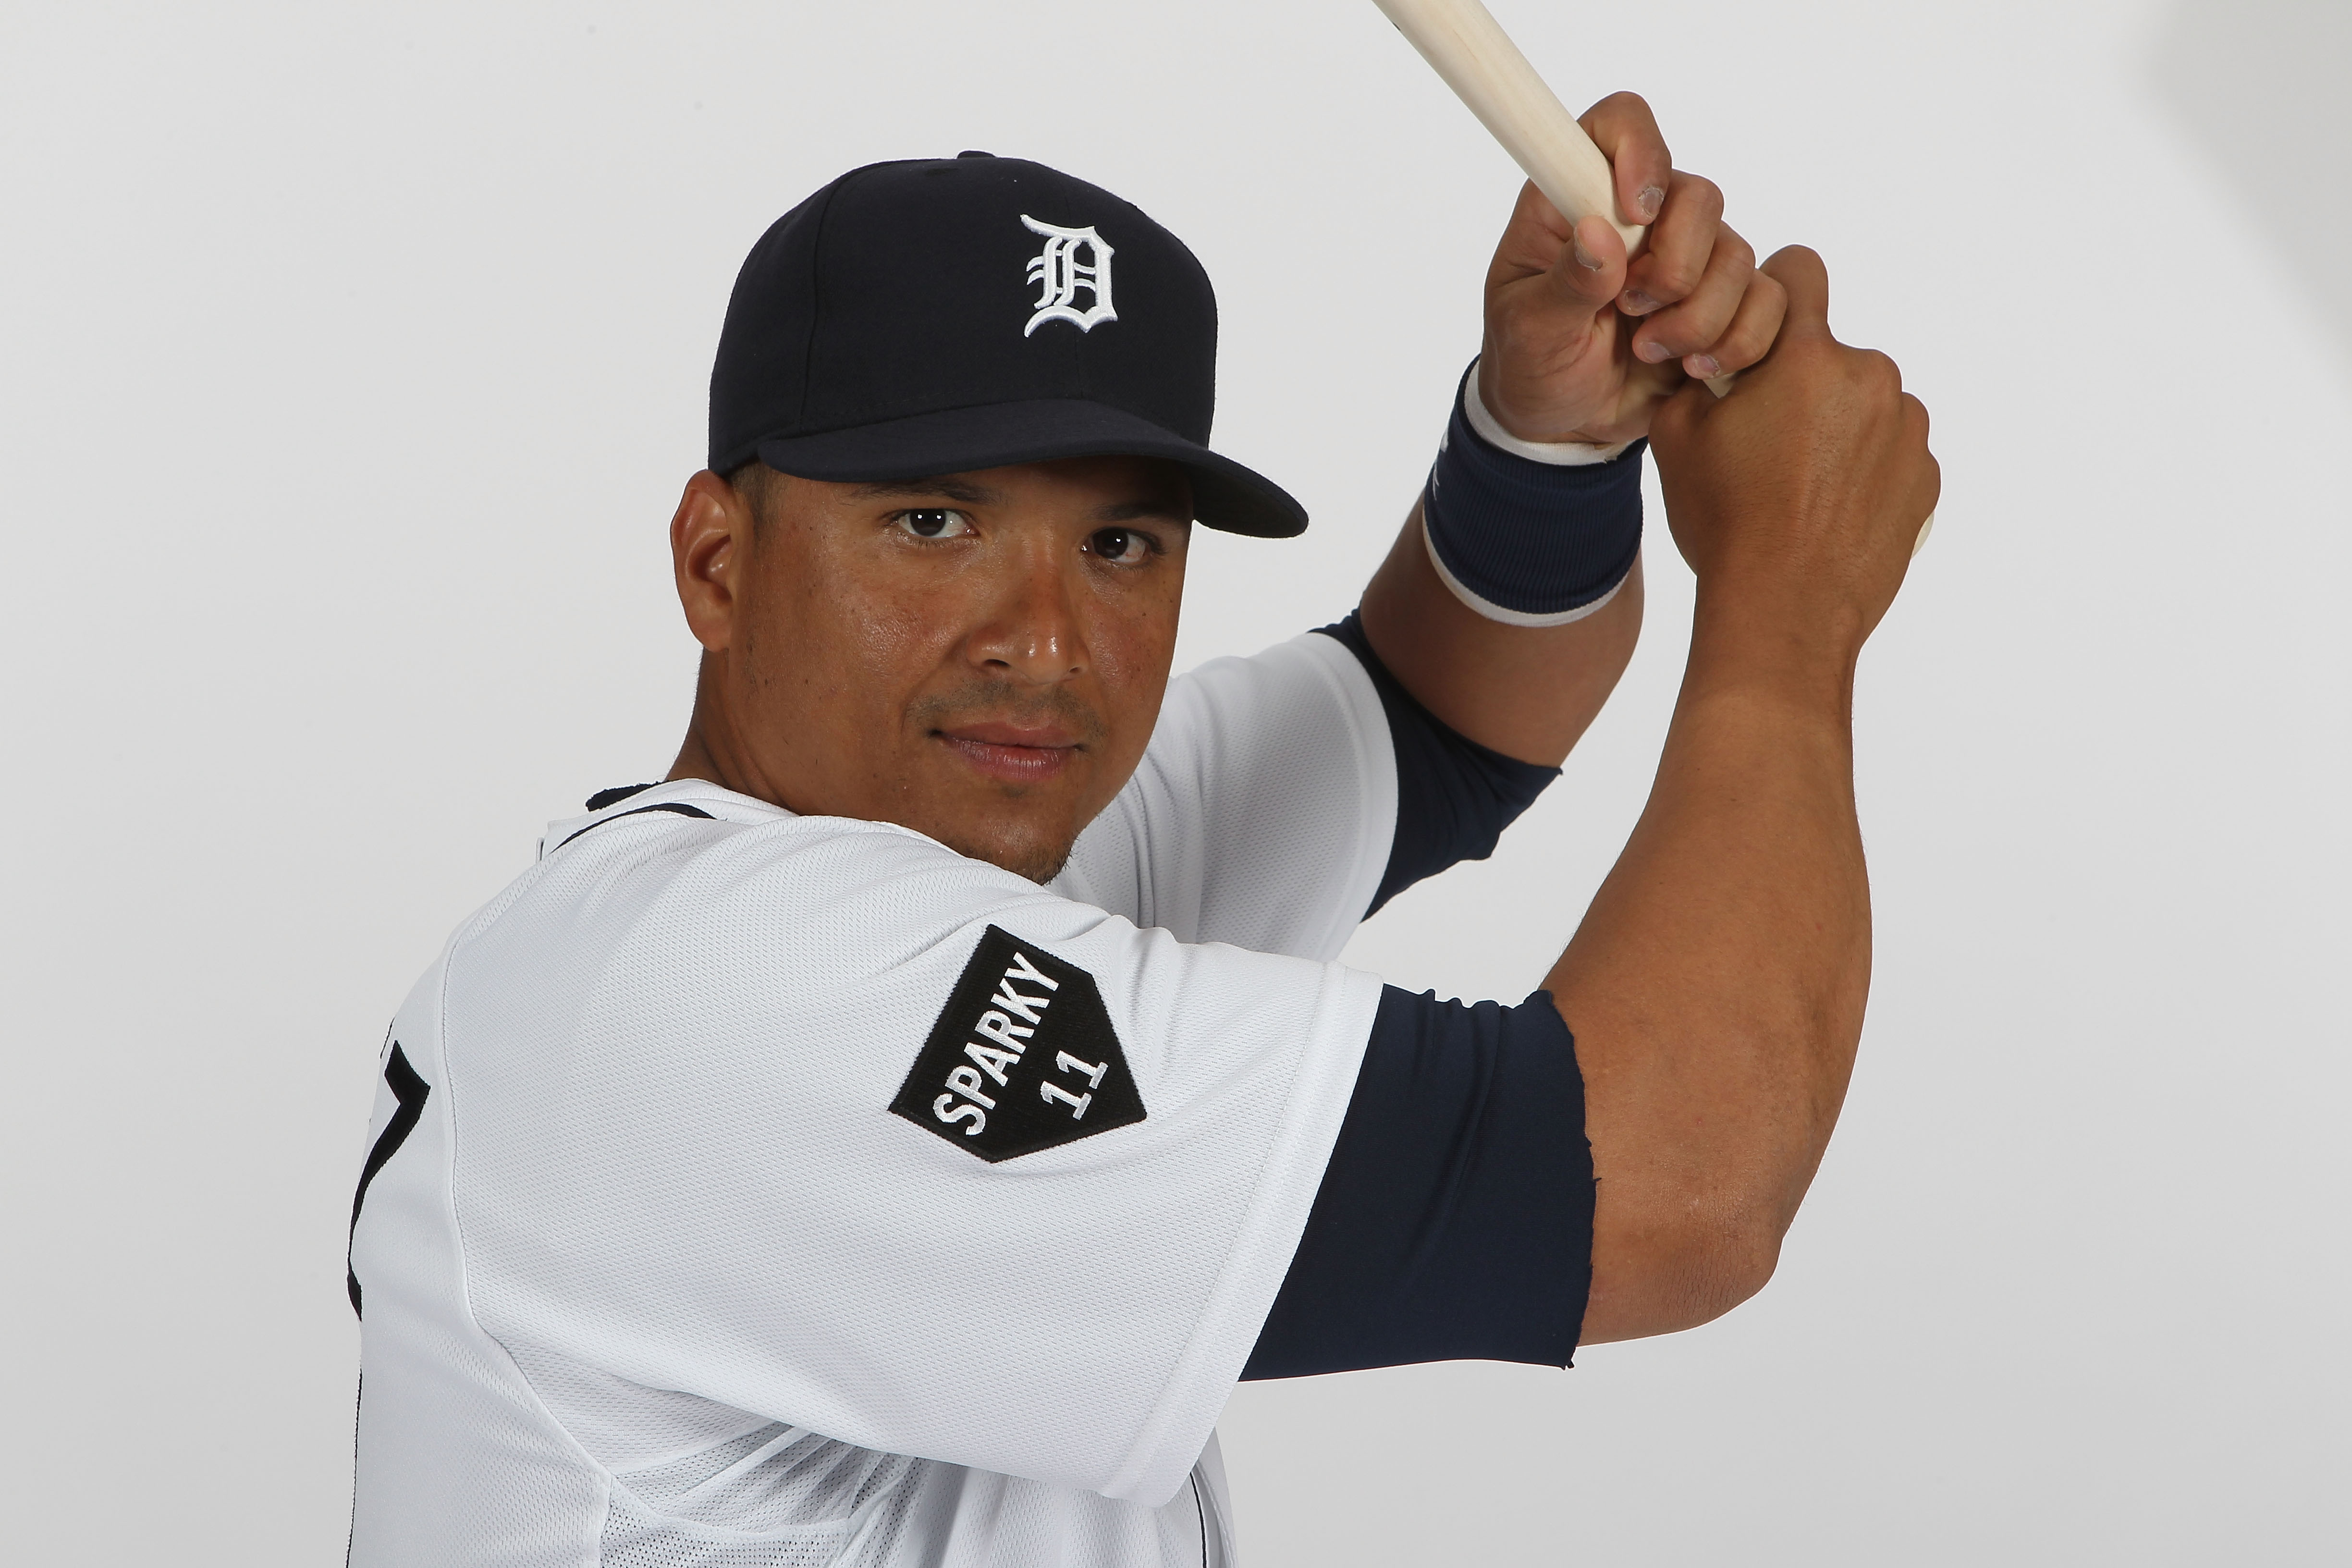 LAKELAND, FL - FEBRUARY 21:  Victor Martinez #41 of the Detroit Tigers poses for a portrait during Photo Day on February 21, 2011 at Joker Marchant Stadium in Lakeland, Florida.  (Photo by Nick Laham/Getty Images)